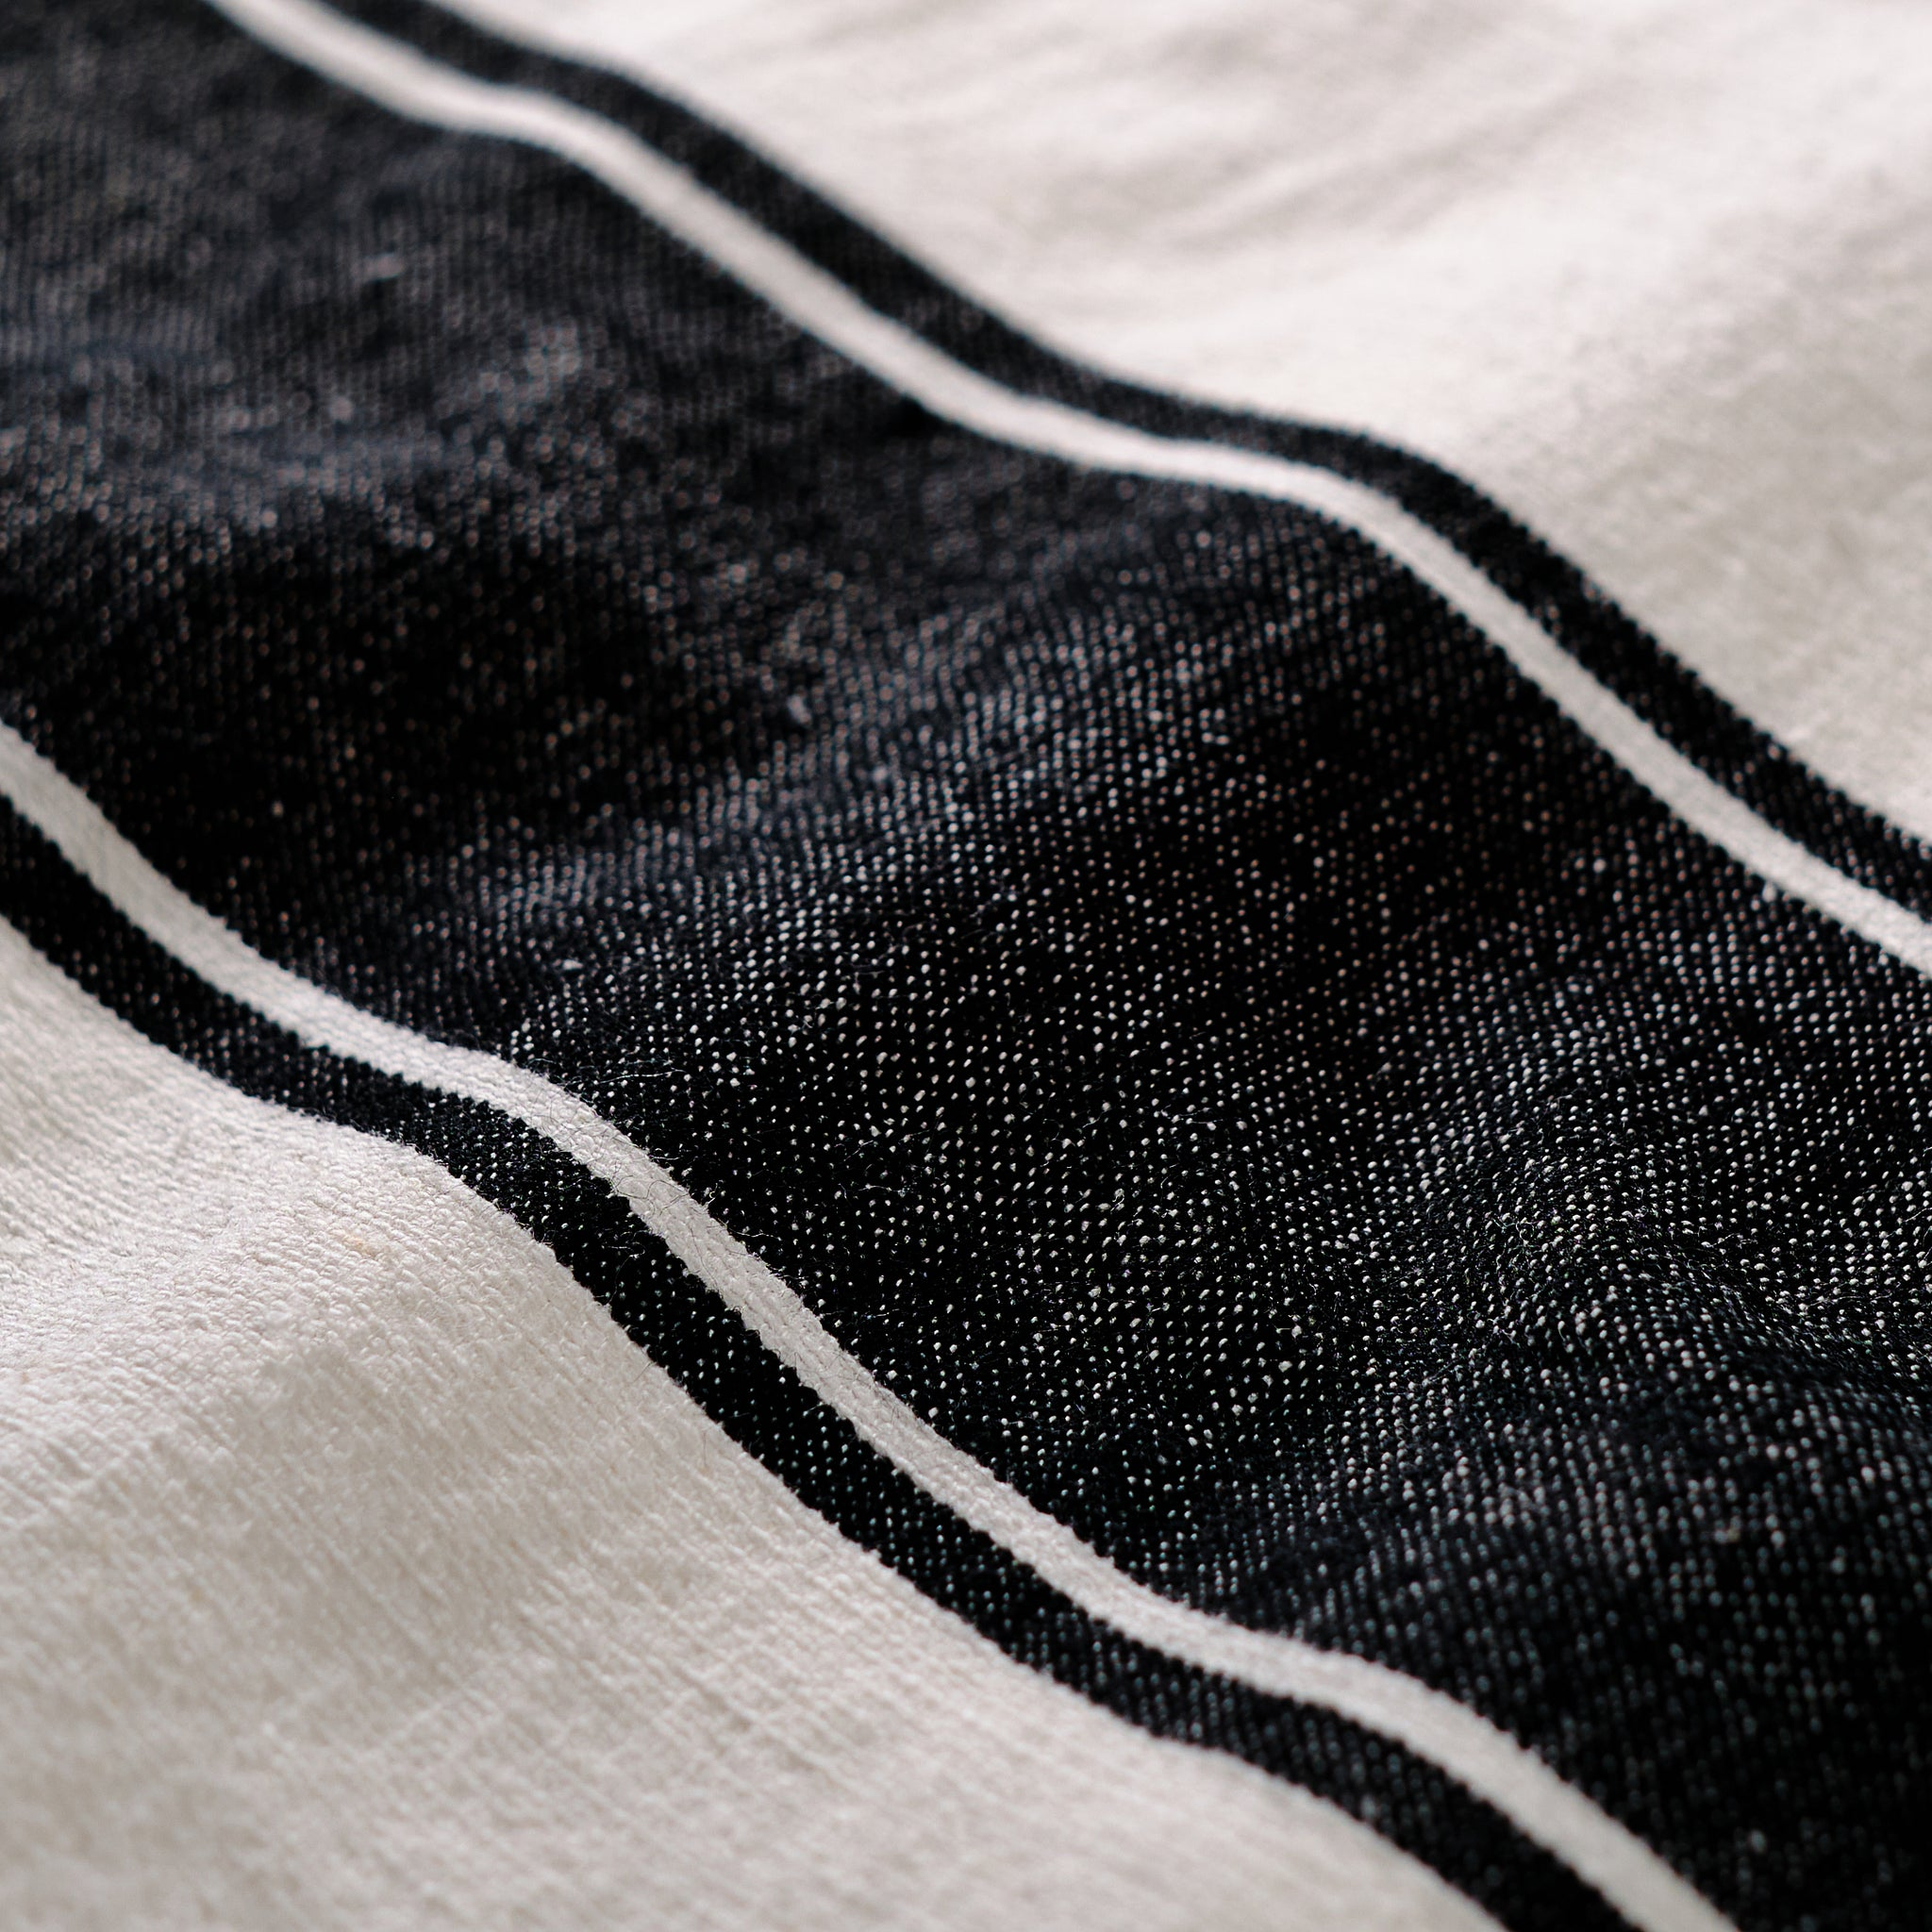 Handloomed Table Runner - Black